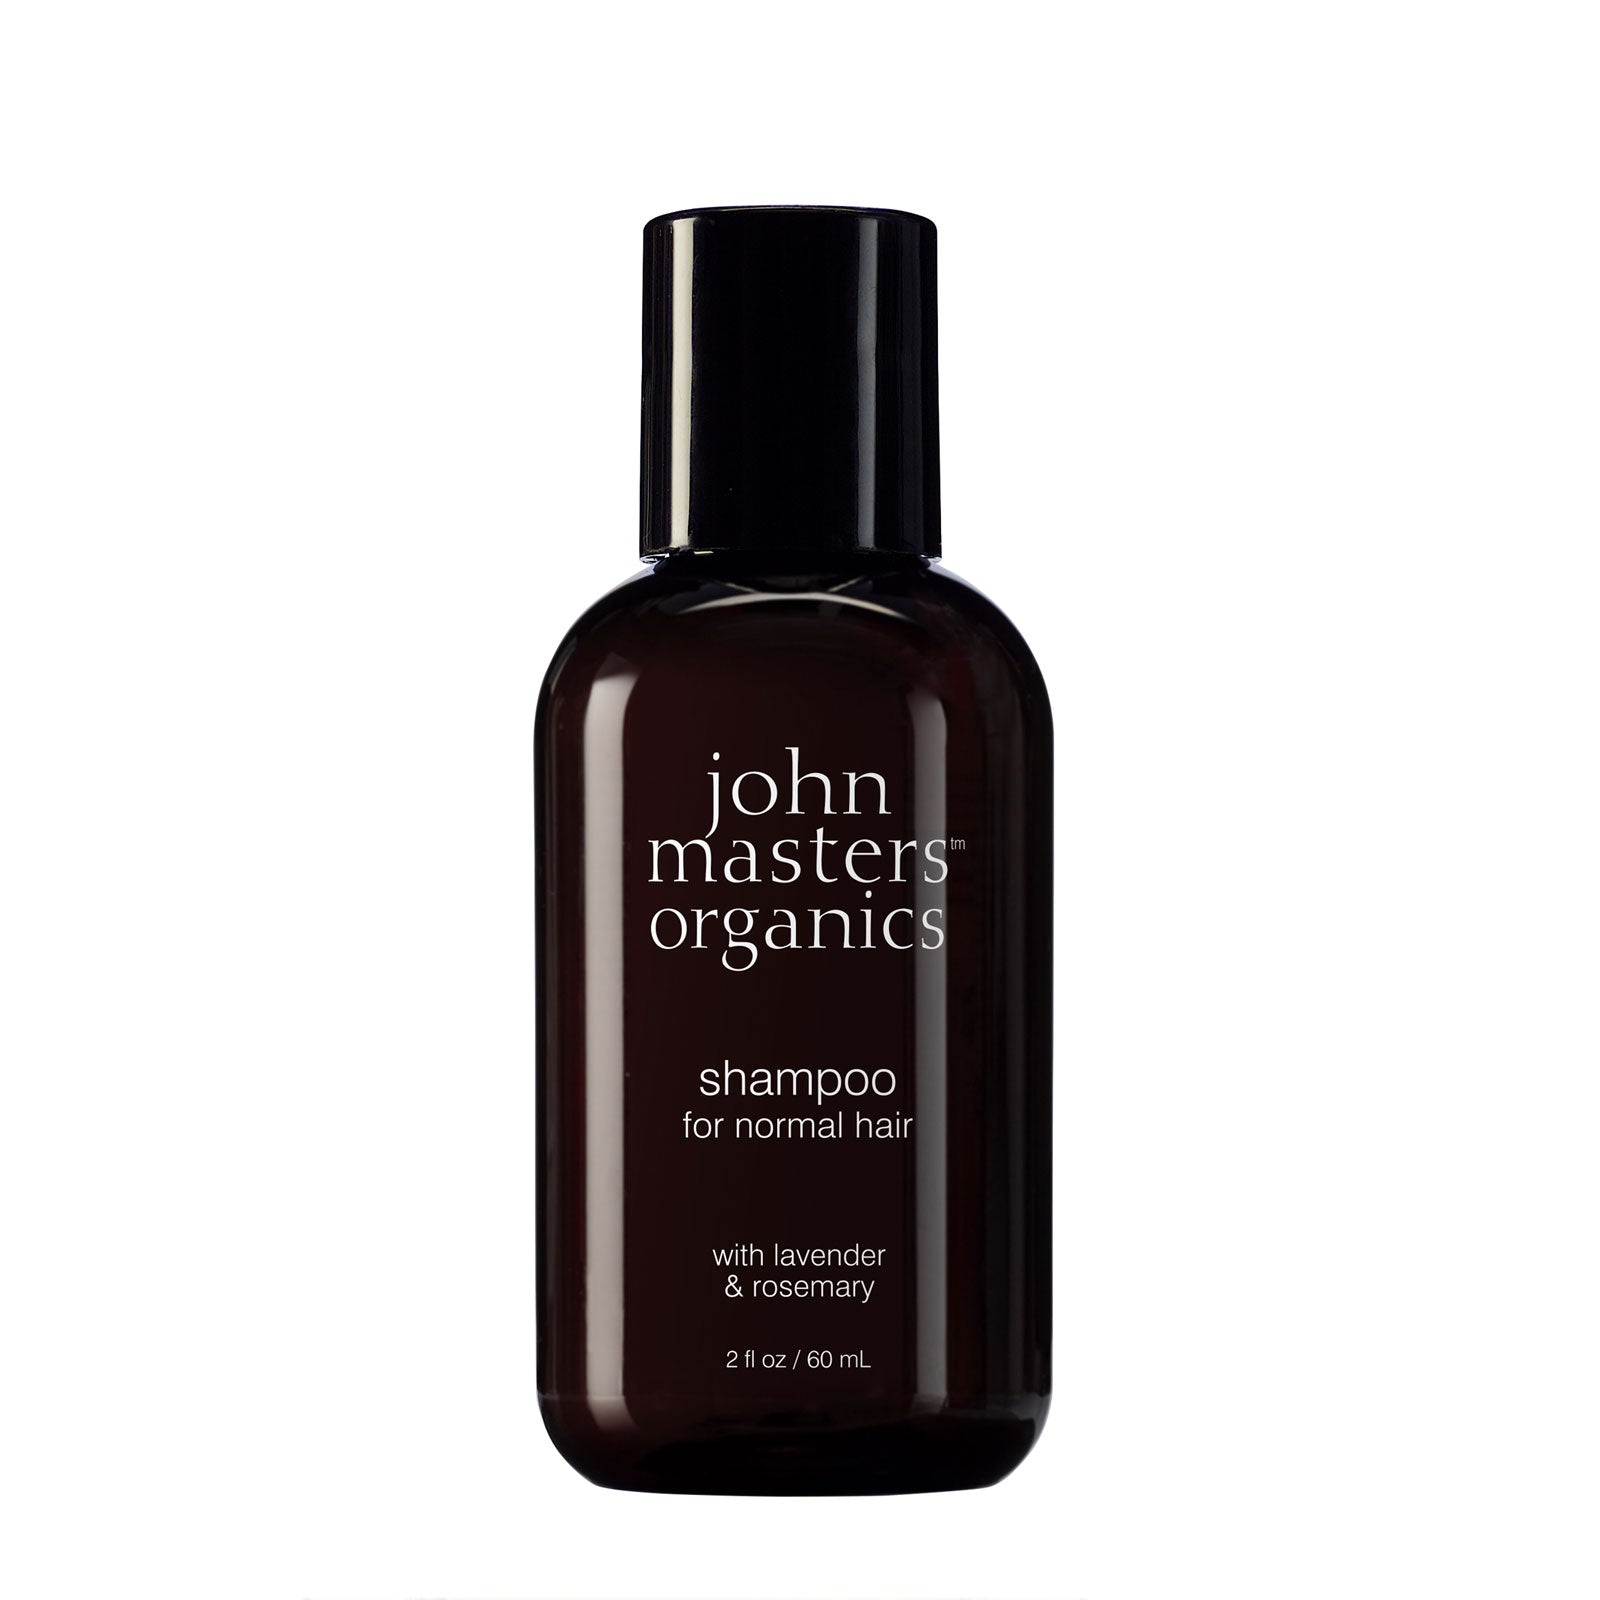 John Masters Organics Lavender & Rosemary Shampoo for Normal Hair 60ml